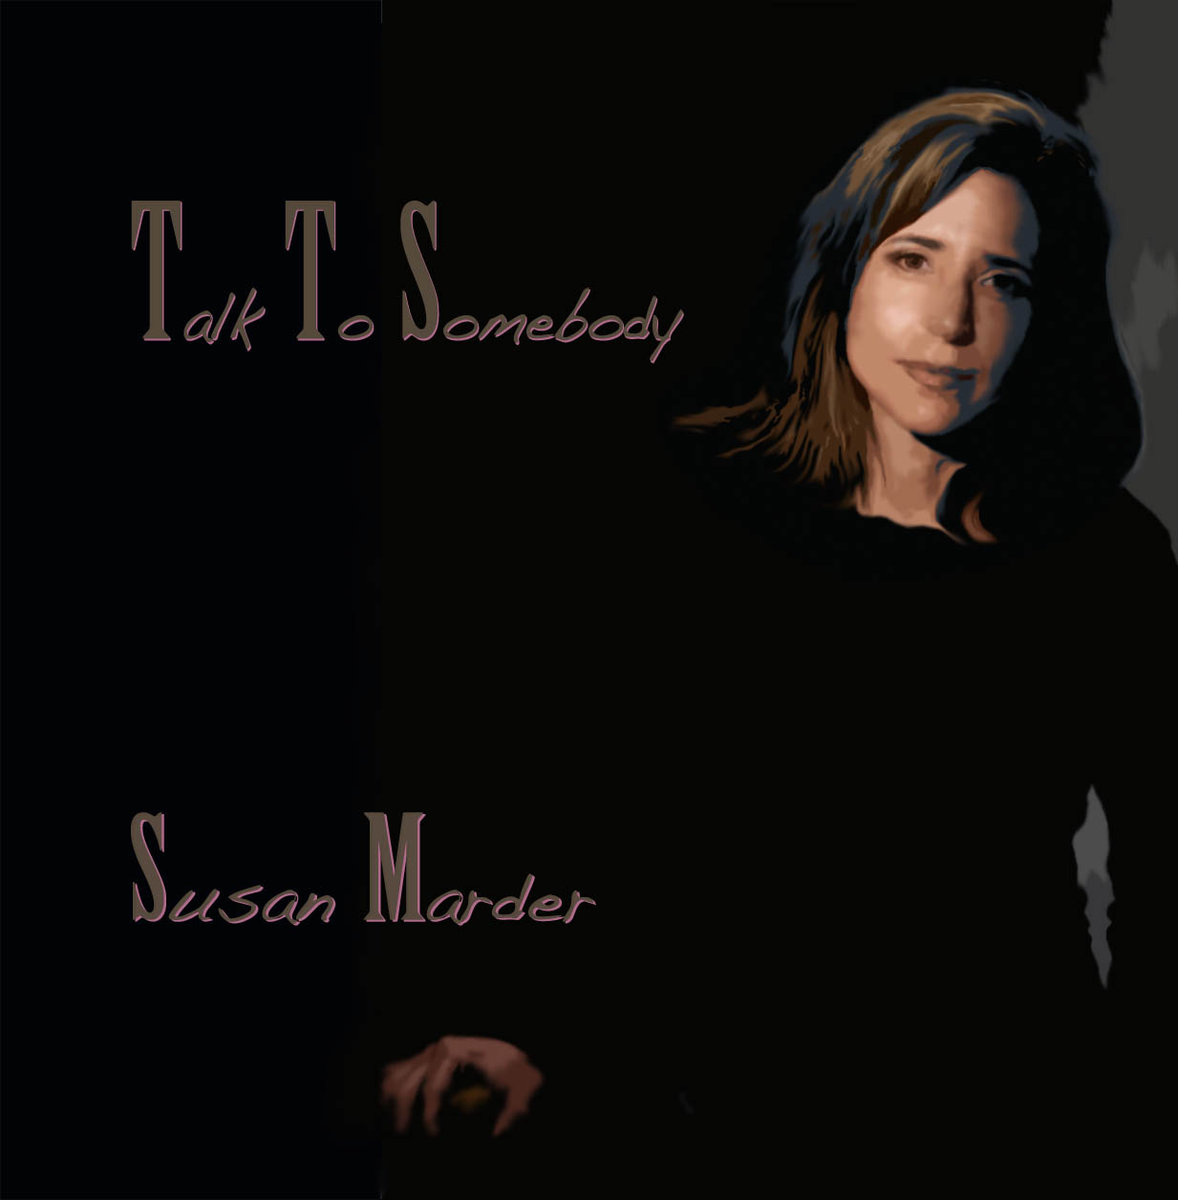 2010 Susan Marder – Talk To Somebody